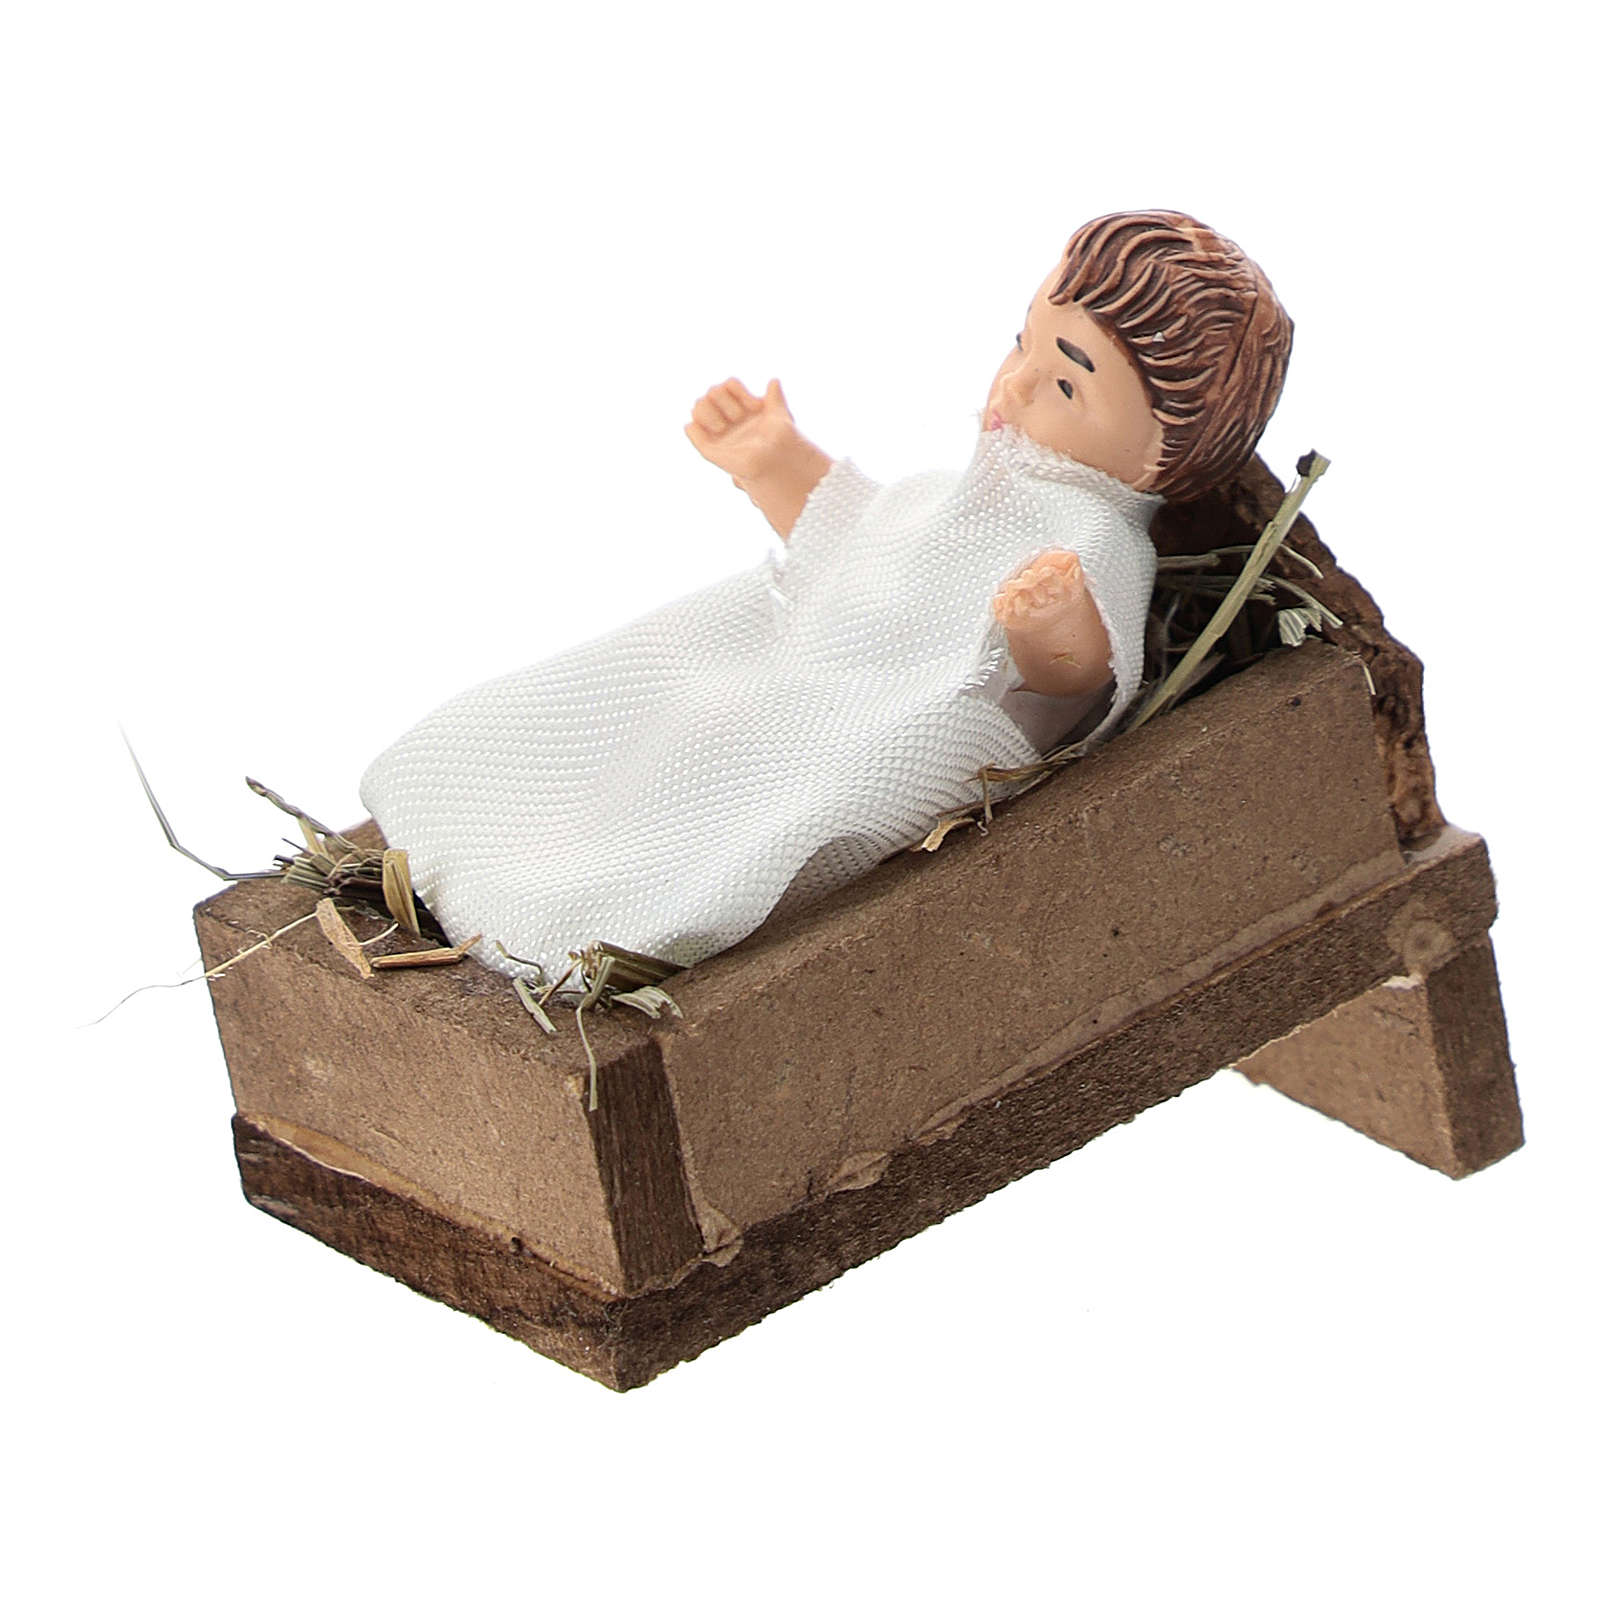 Statue of a baby with a cradle for Nativity scenes of 12 cm in terracotta and plastic 3